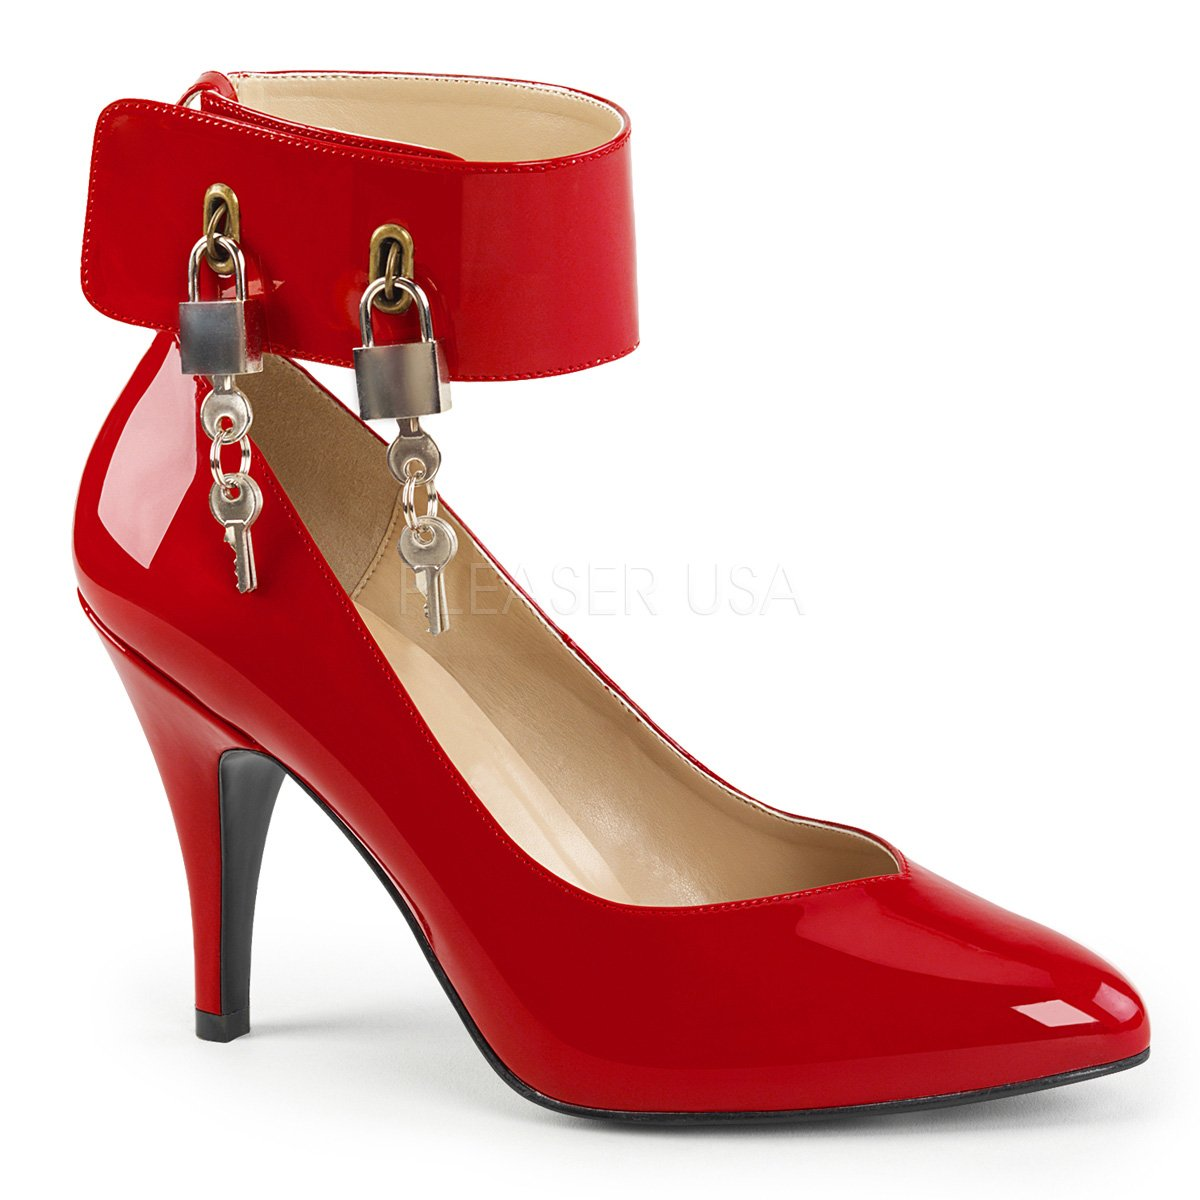 0aa3c8ee982 Wide Band Locking Ankle Strap Pump Shoes 4-inch Heel